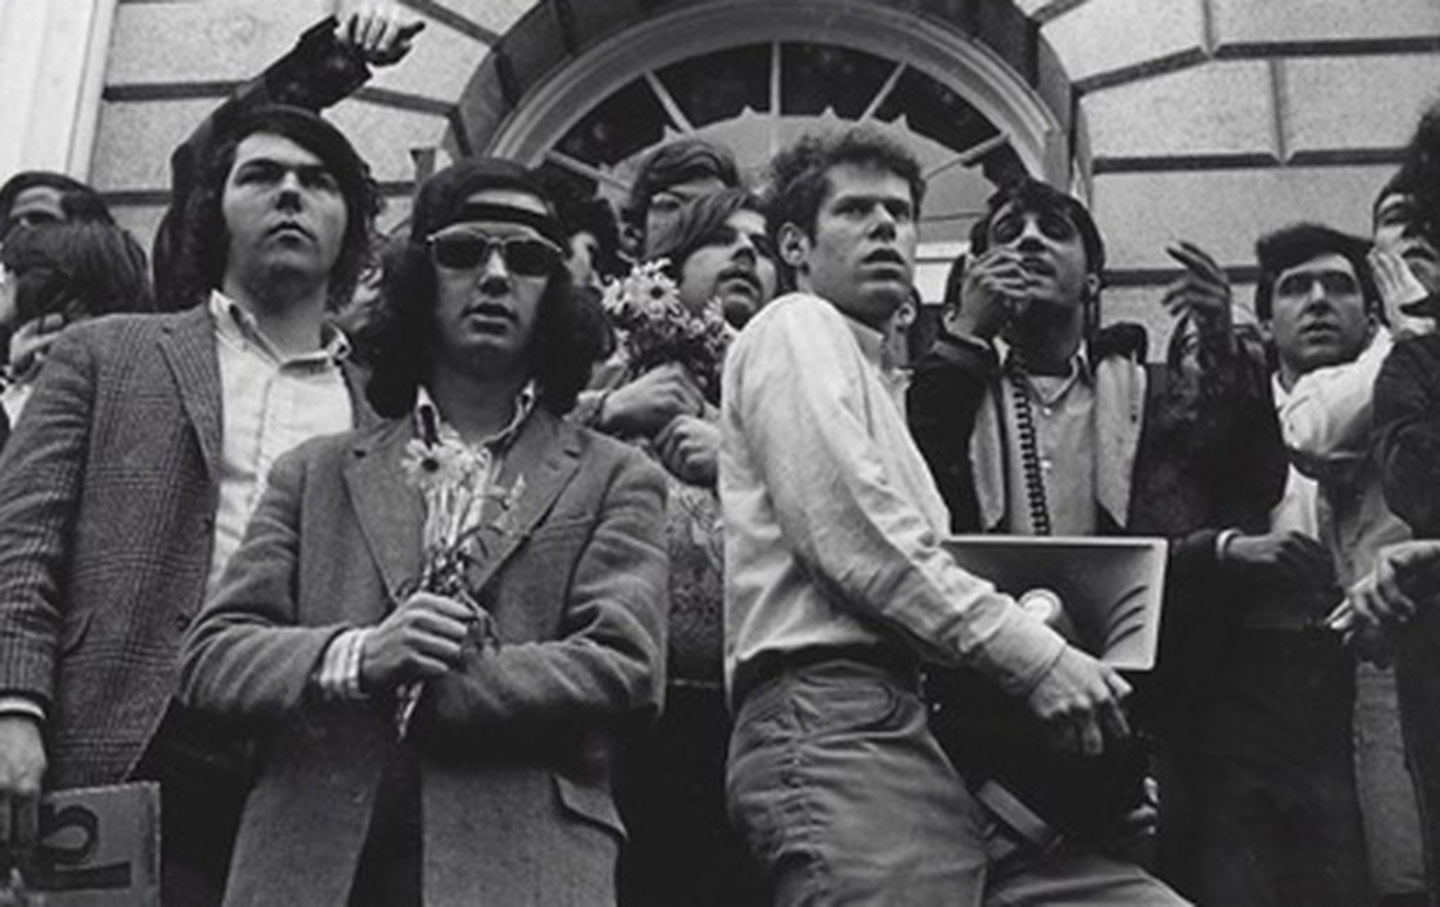 Harvard strike 1969